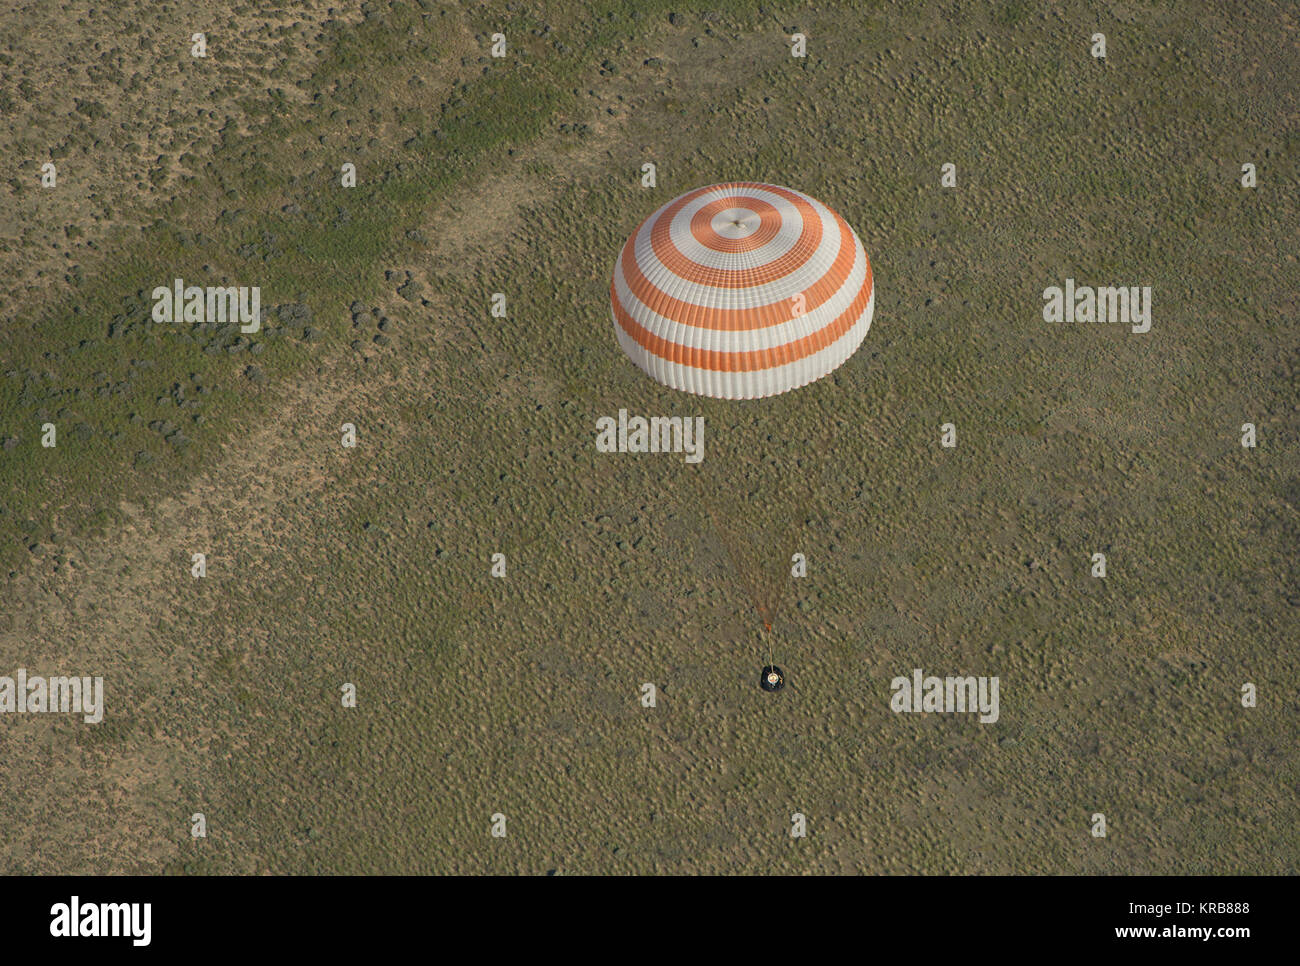 The Soyuz TMA-07M spacecraft is seen as it lands with Expedition 35 Commander Chris Hadfield of the Canadian Space - Stock Image